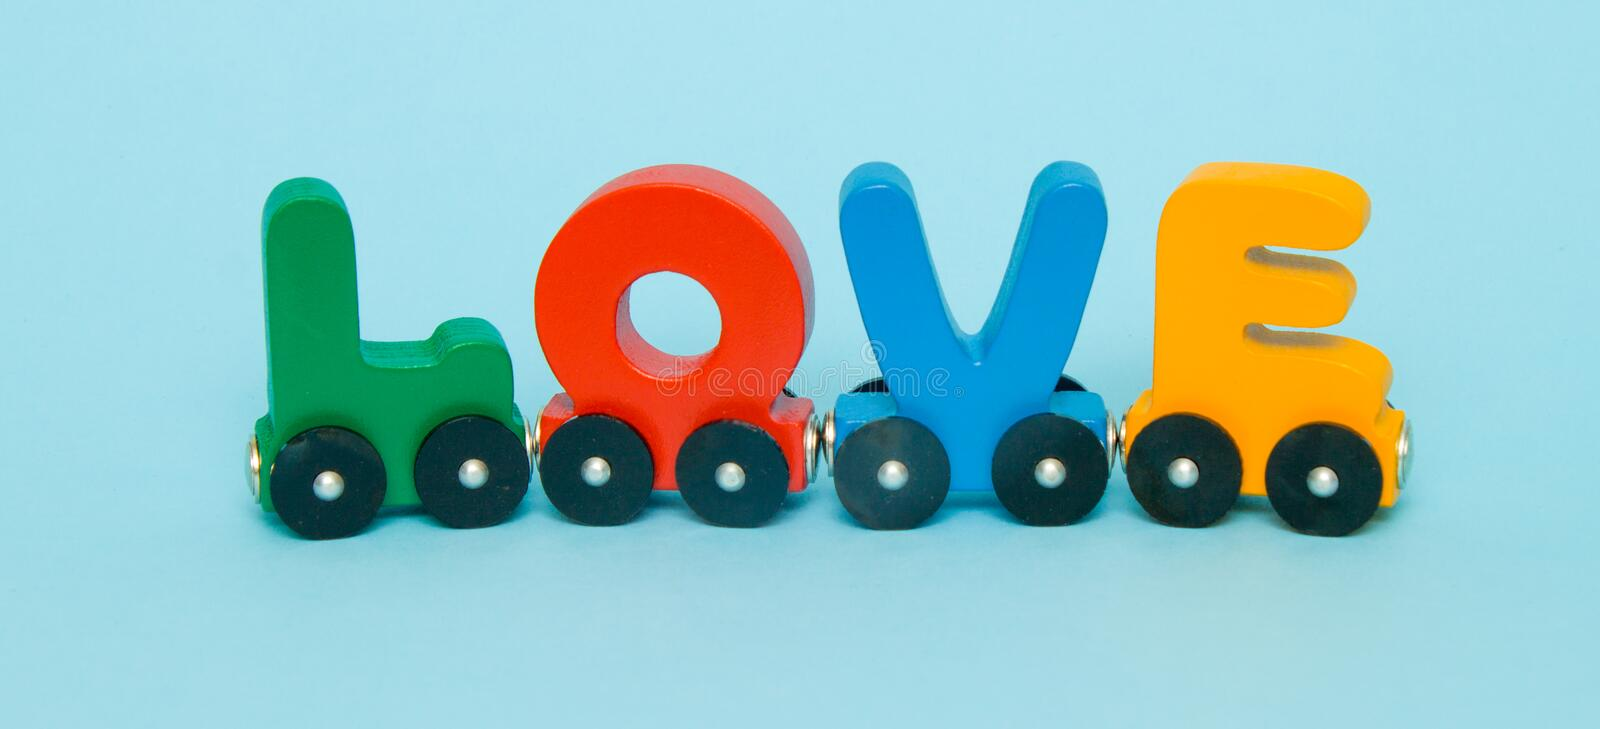 Word Love made of letters train alphabet. Bright colors of red yellow green and blue on a white background. Early childhood develo stock photo